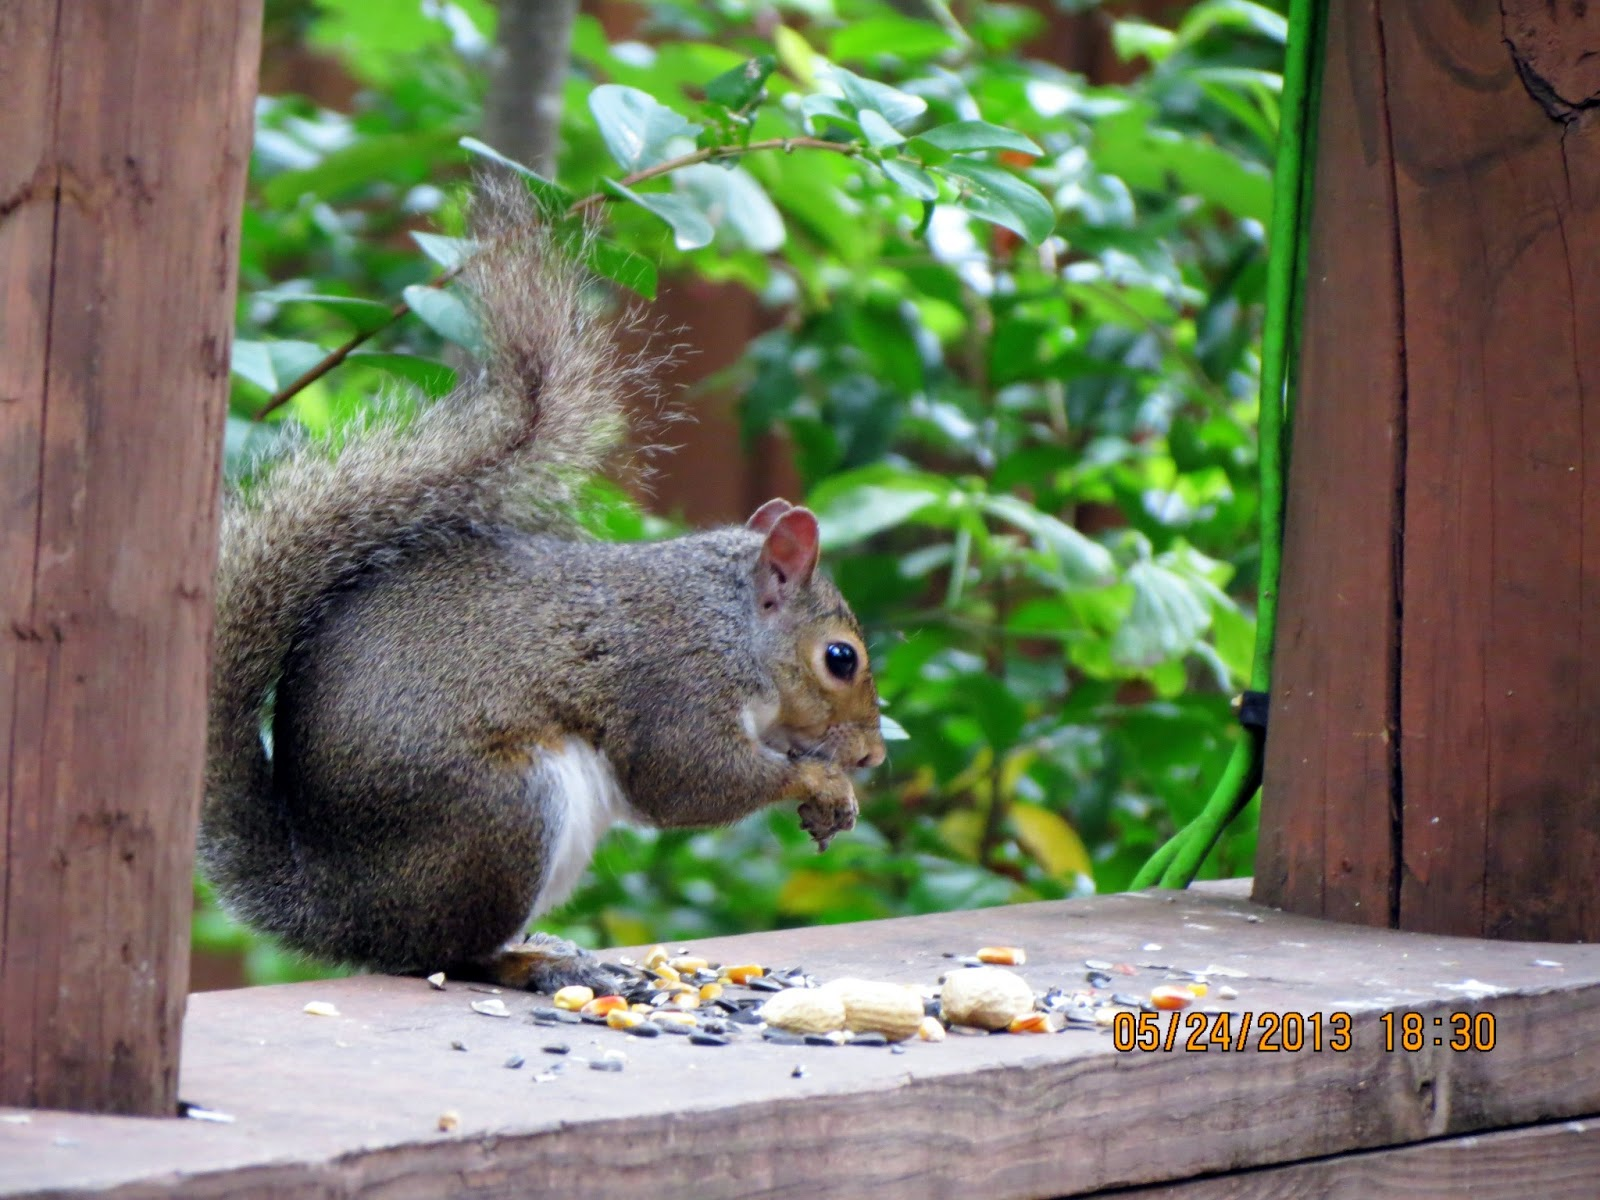 How To Keep Rats Away From Bird Feeders Image Gallery Rats Away Easy Tips For A Squirrel Proof